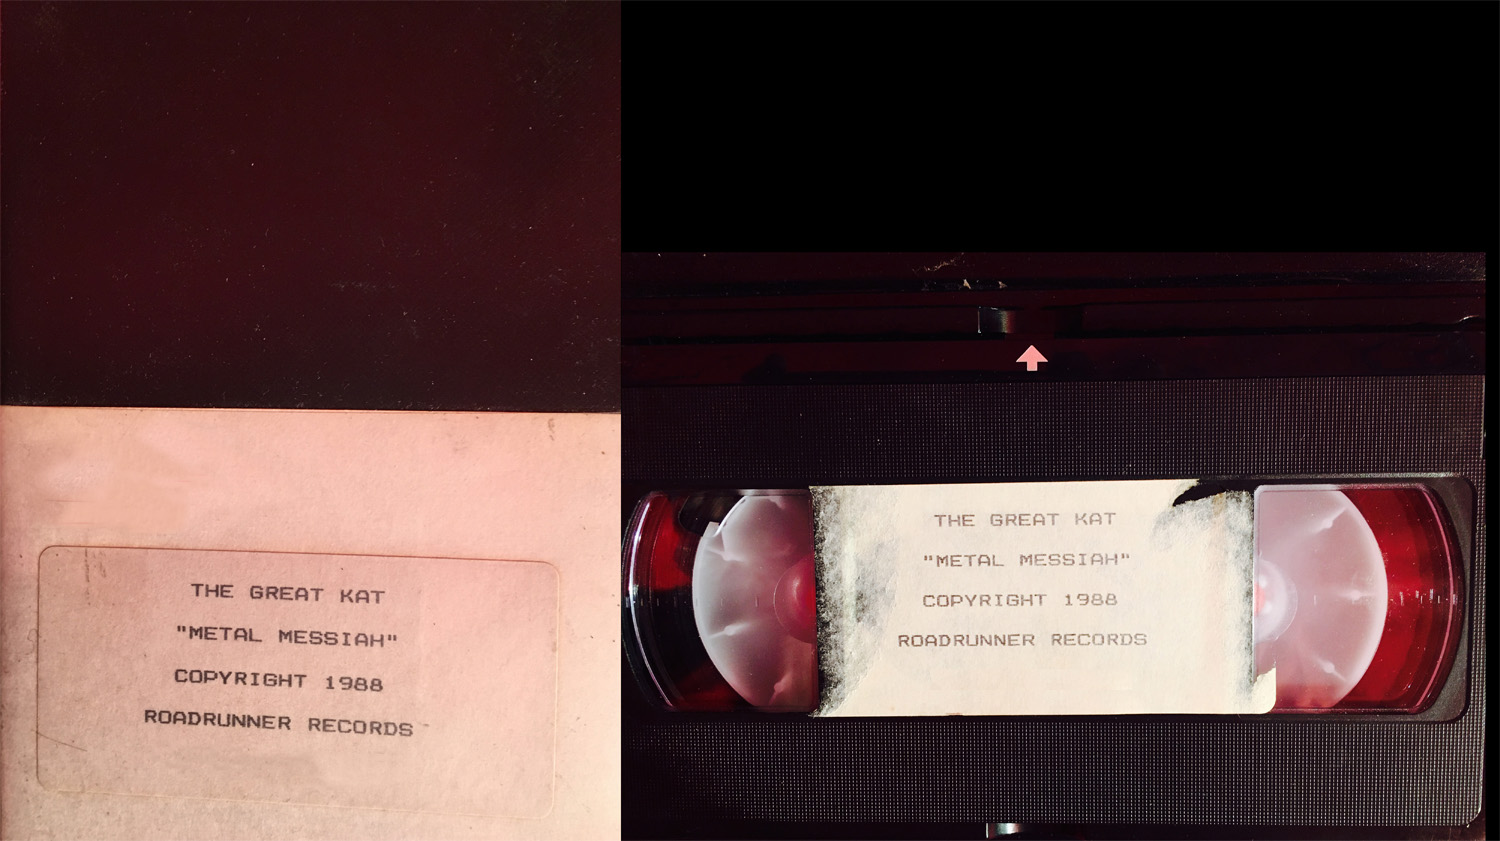 "METAL HISTORY! ORIGINAL VHS Video of The Great Kat's LEGENDARY ""METAL MESSIAH"" Music Video from ""WORSHIP ME OR DIE!"" METAL! METAL! METAL MESSIAH!"